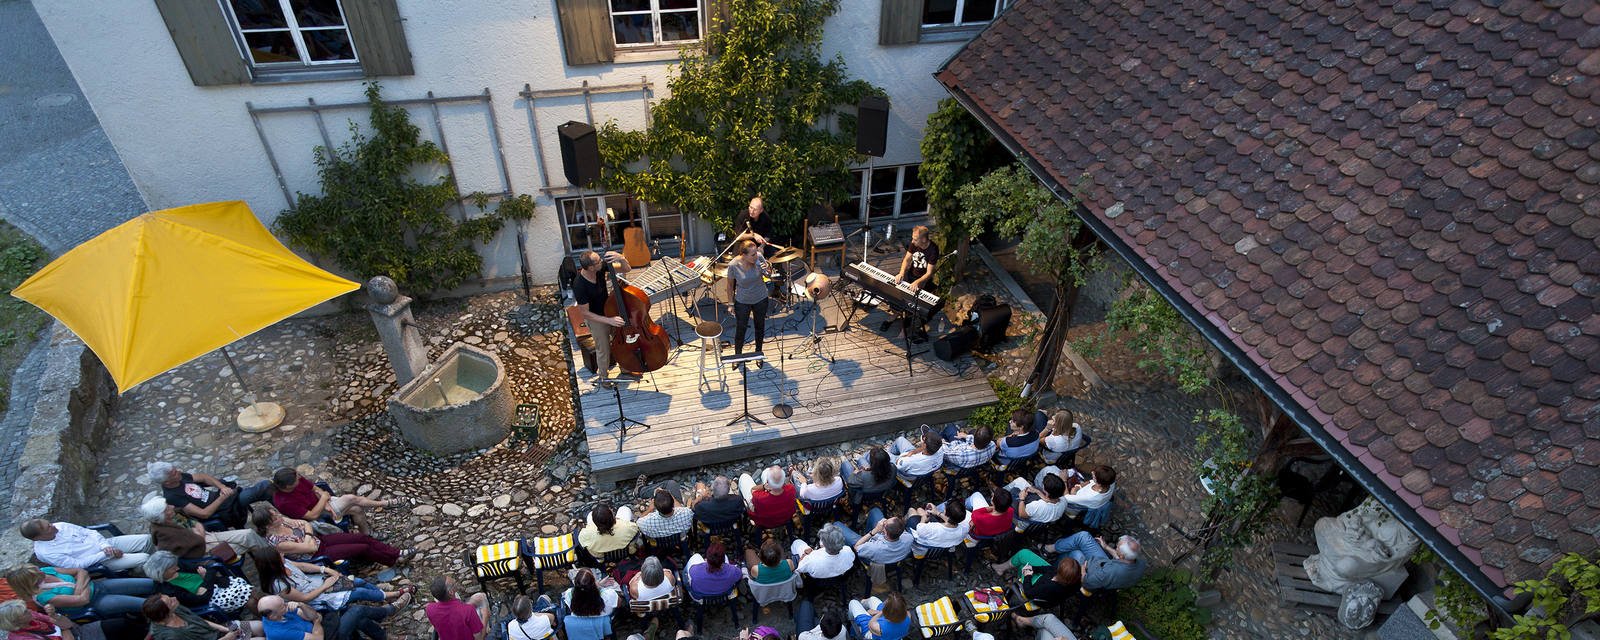 Sommerjazz in Leutkirch